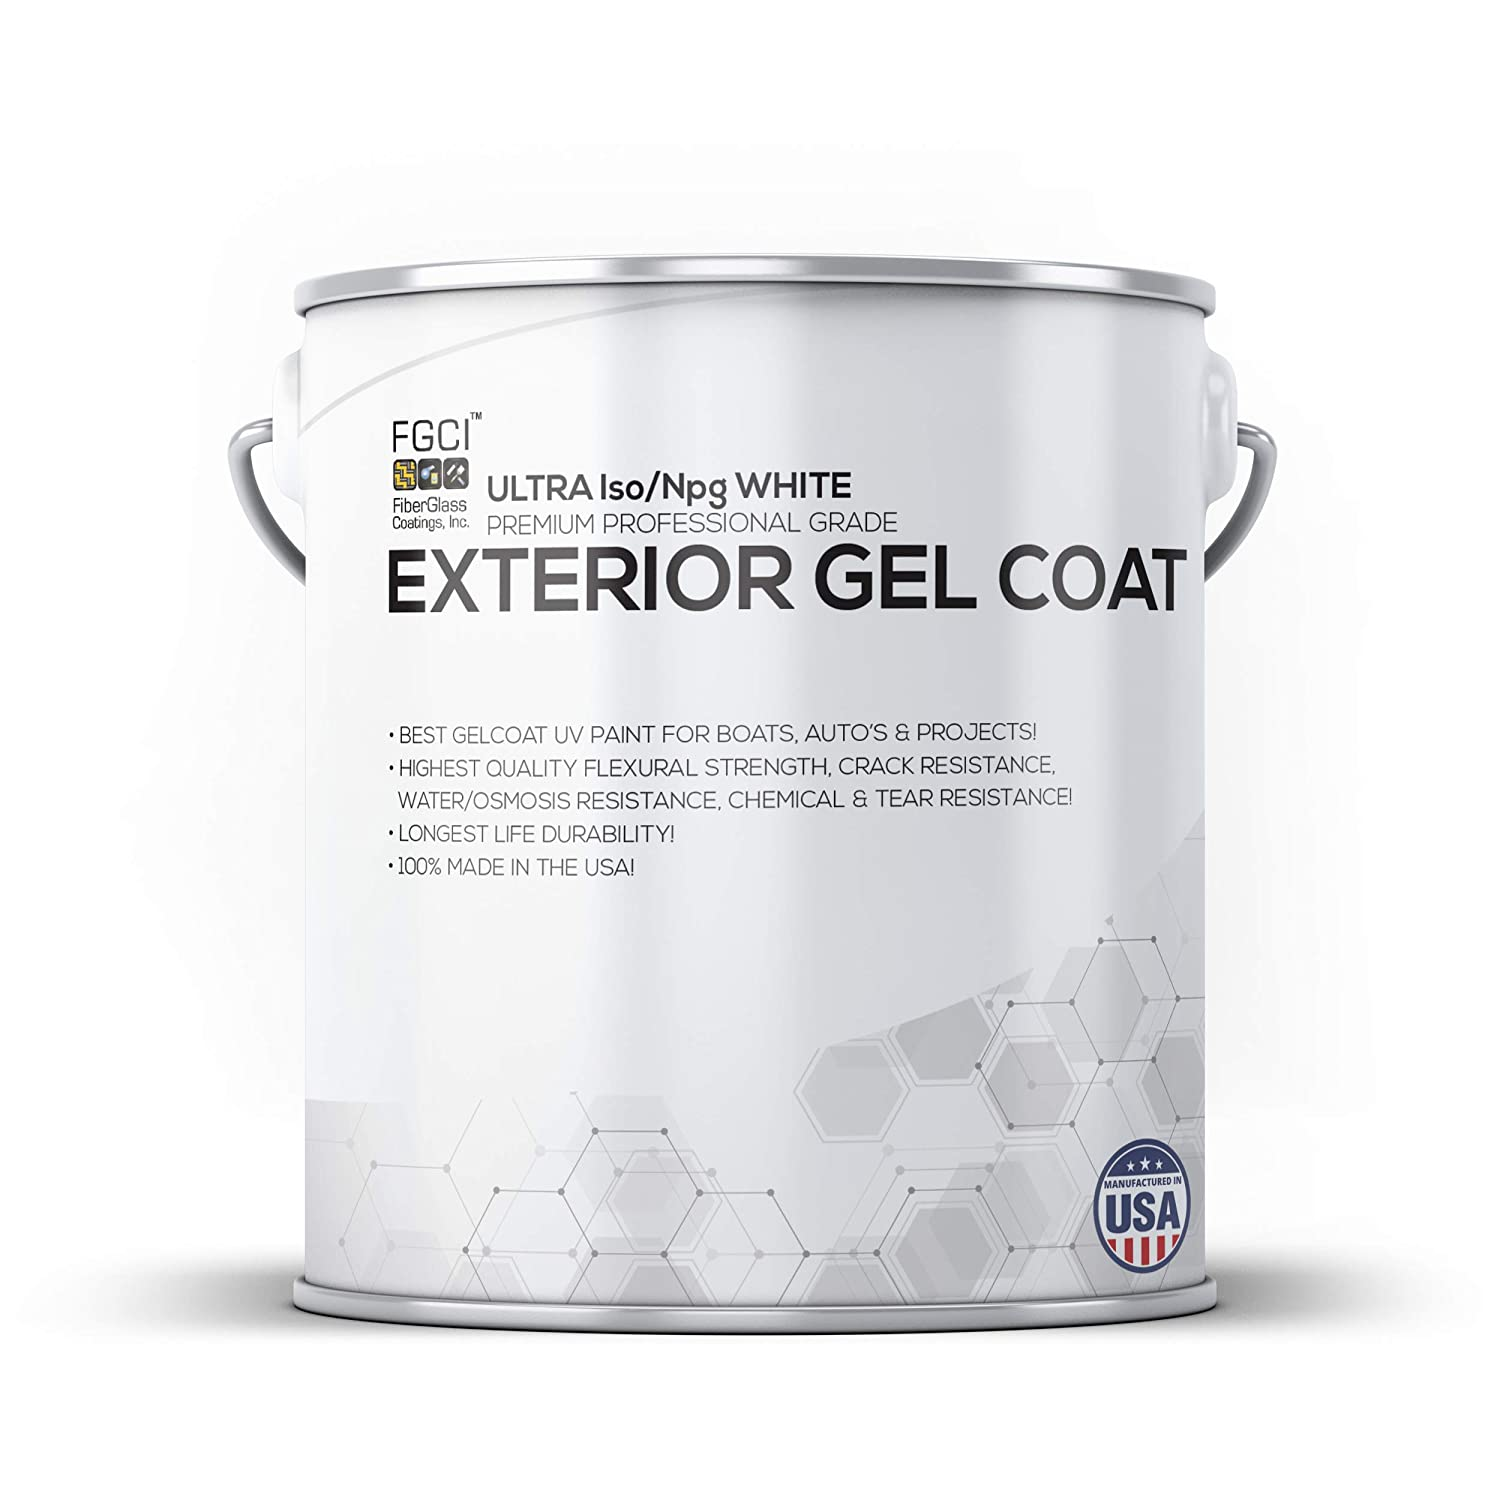 B019HB8NVA Ultra White Boat Paint, Exterior Gel Coat KIT, 1 Quart W/ 1 OZ MEKP, Fiberglass Coatings, Inc, Professional Marine GELCOAT Specialists, Boat Exterior Hulls, Boat Interior Decking, DIY Projects 71vQQCiW7mL